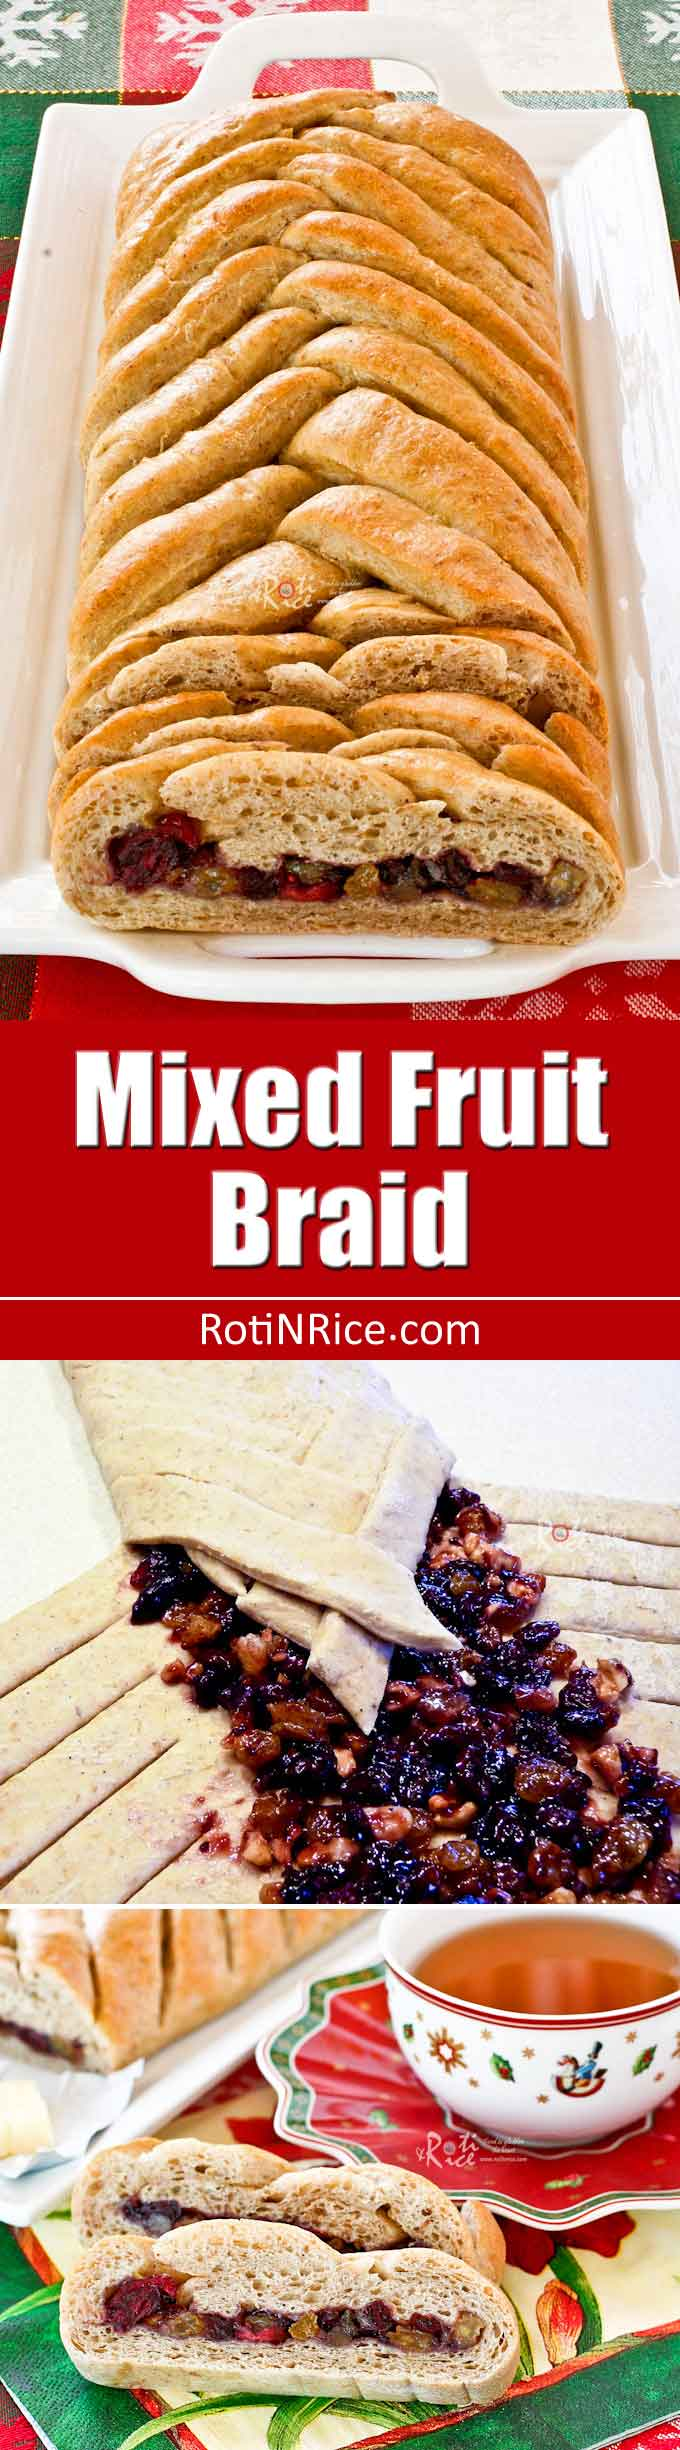 Treat your family and friends to this festive and delicious Mixed Fruit Braid. It is has a sweet filling and is perfect for the holidays. | RotiNRice.com